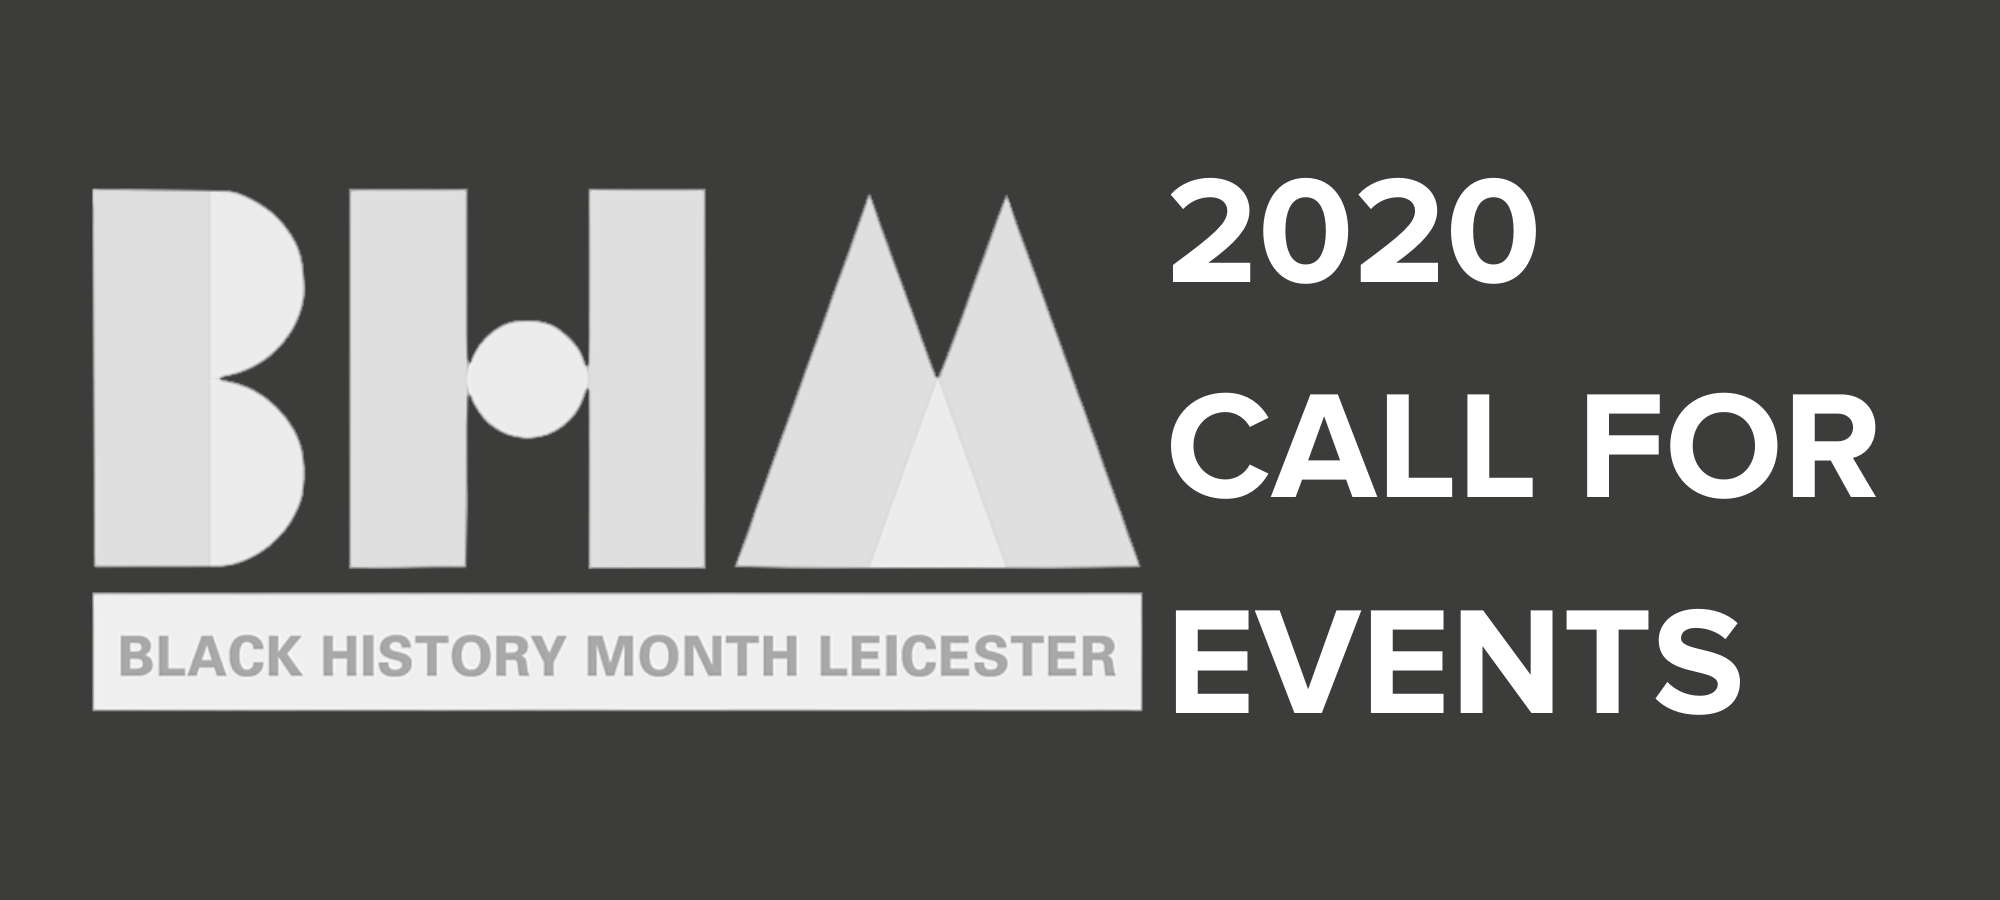 BHM20 Call Out For Events — Page Banner